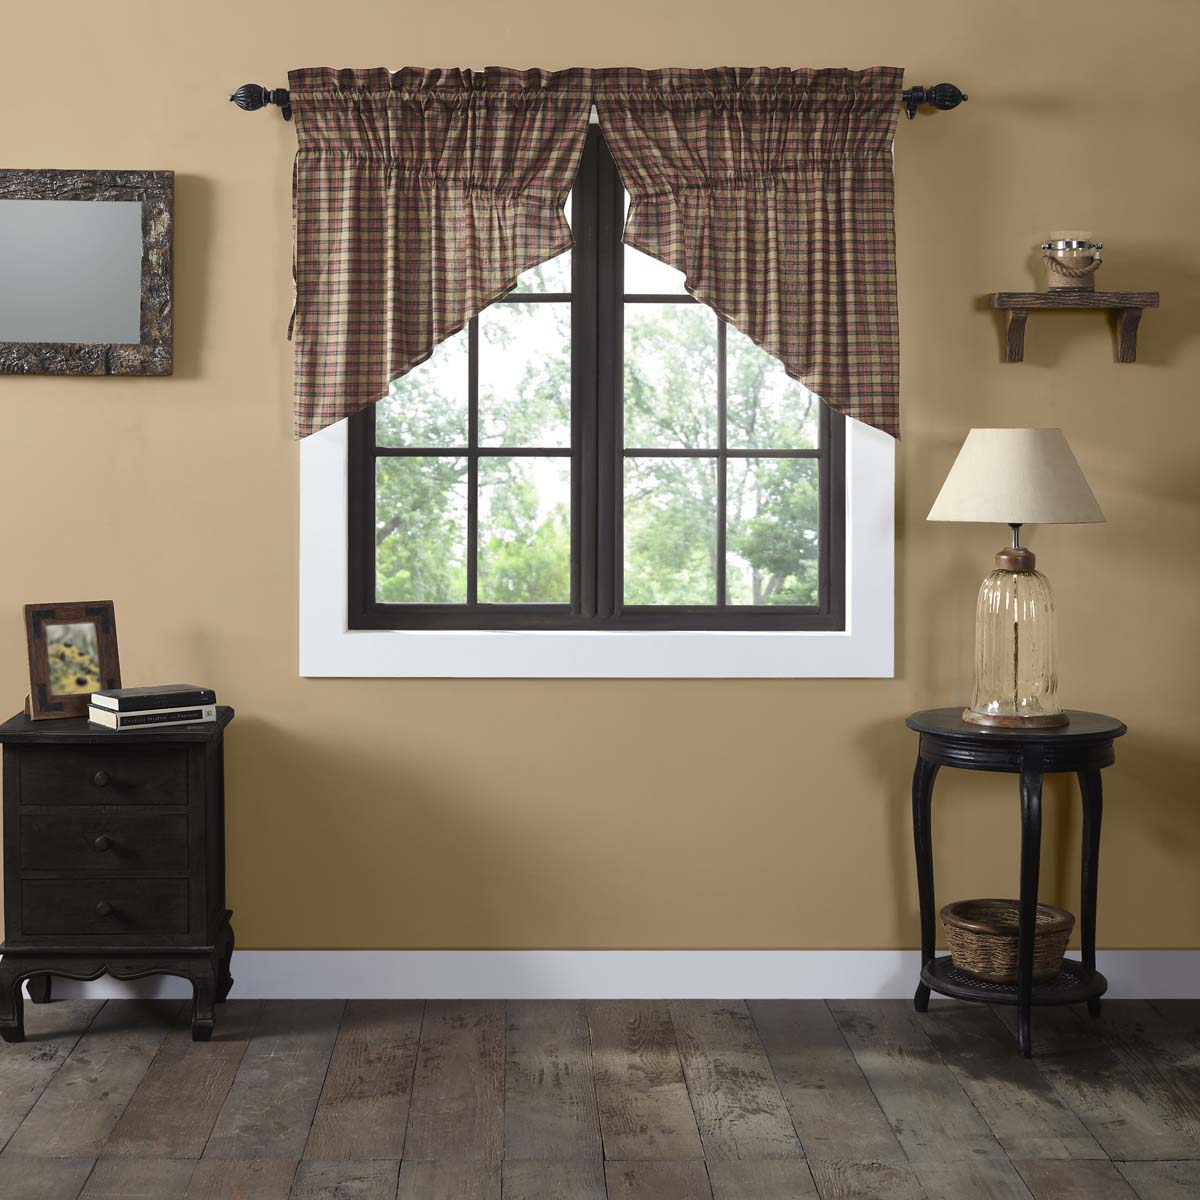 Crosswoods Prairie Swag Set of 2 36x36x18